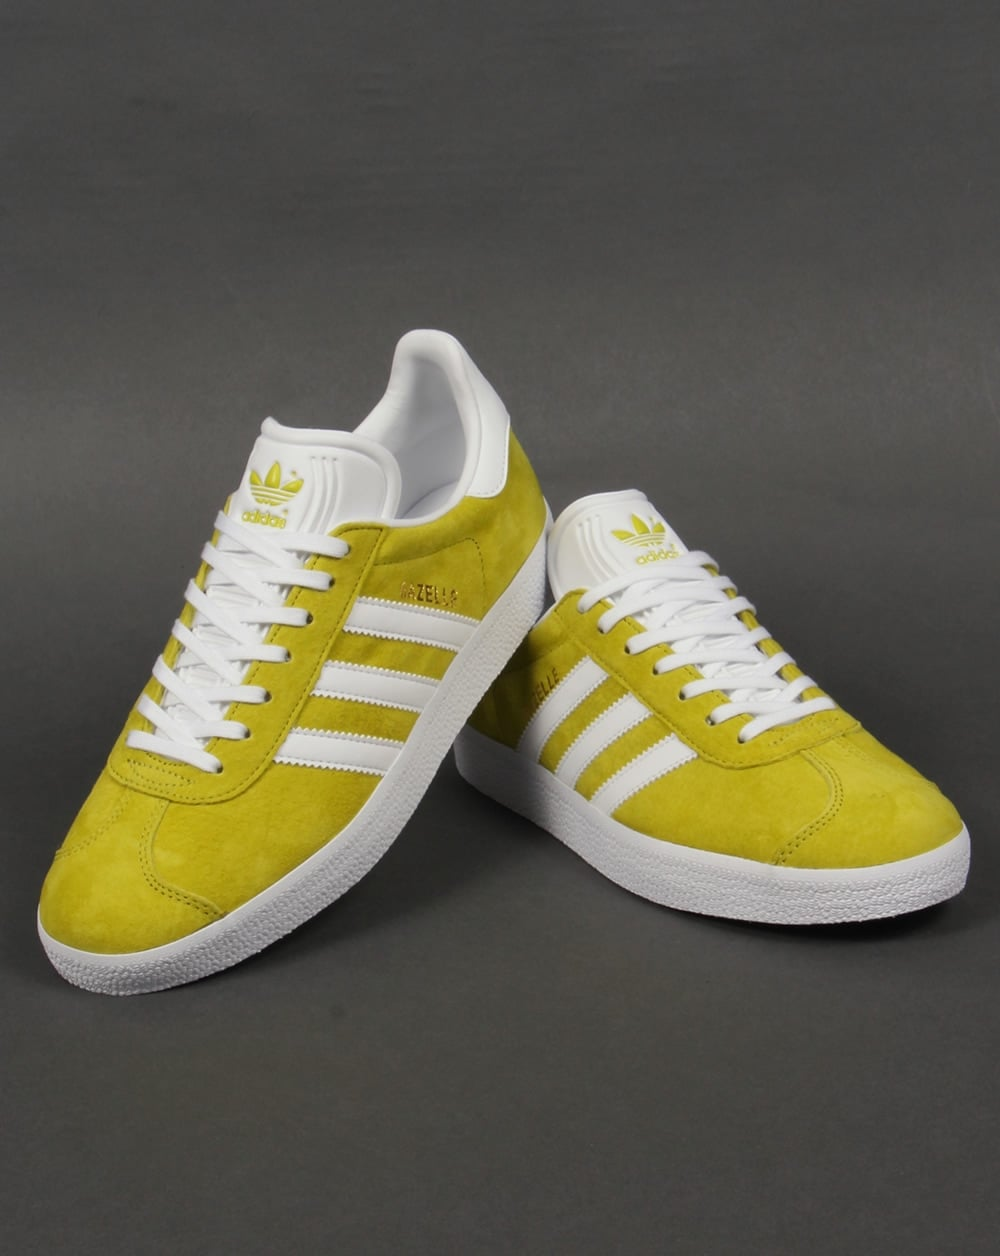 Adidas Trainers Adidas Gazelle Trainers Lime GreenWhite